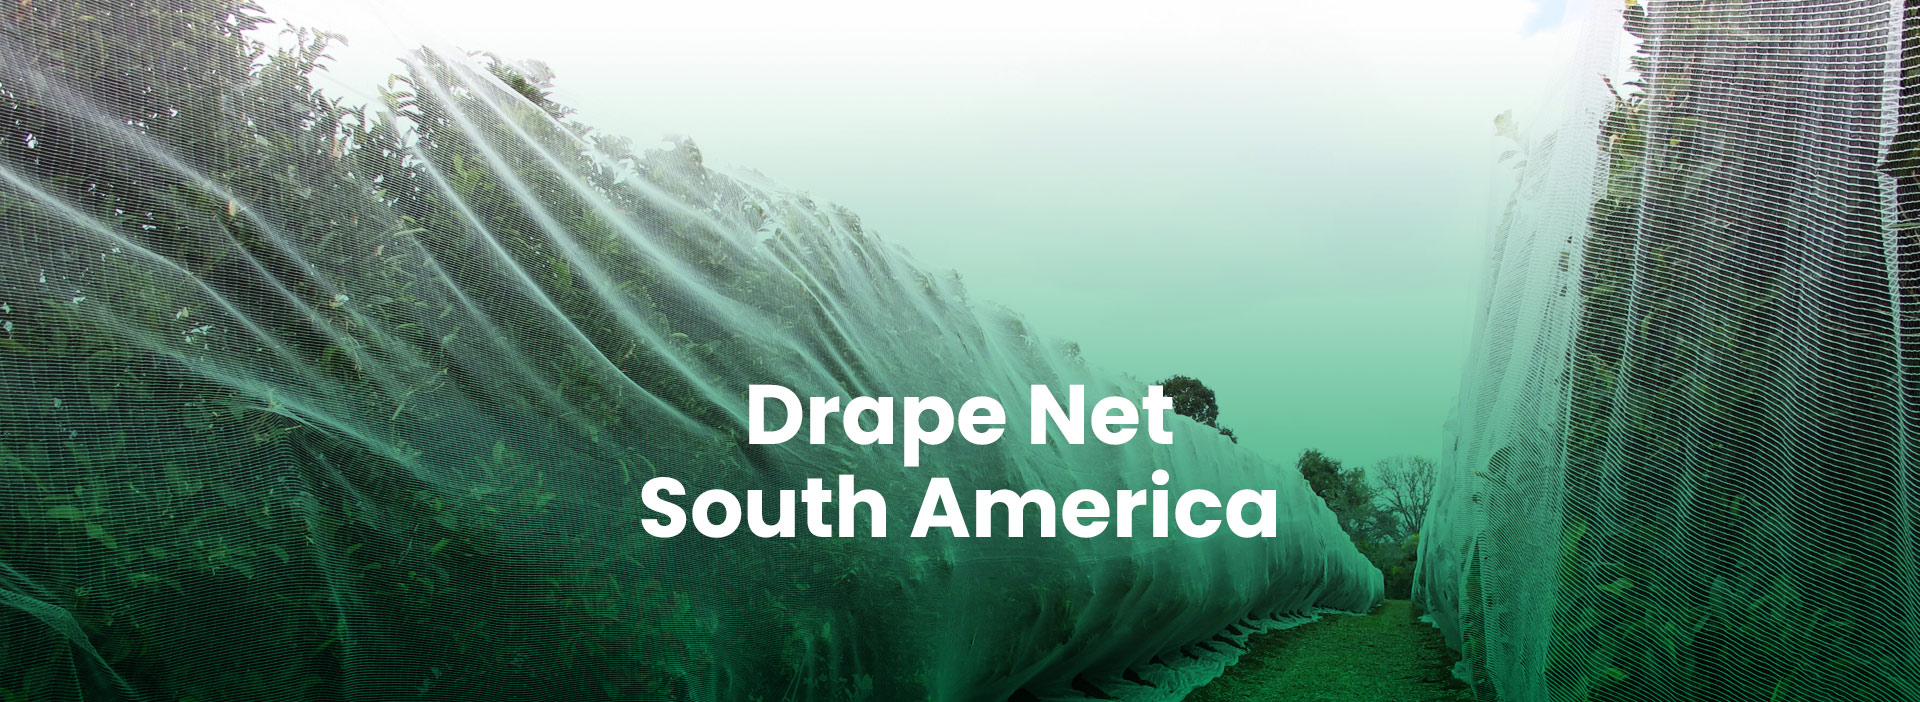 Drape Net South America